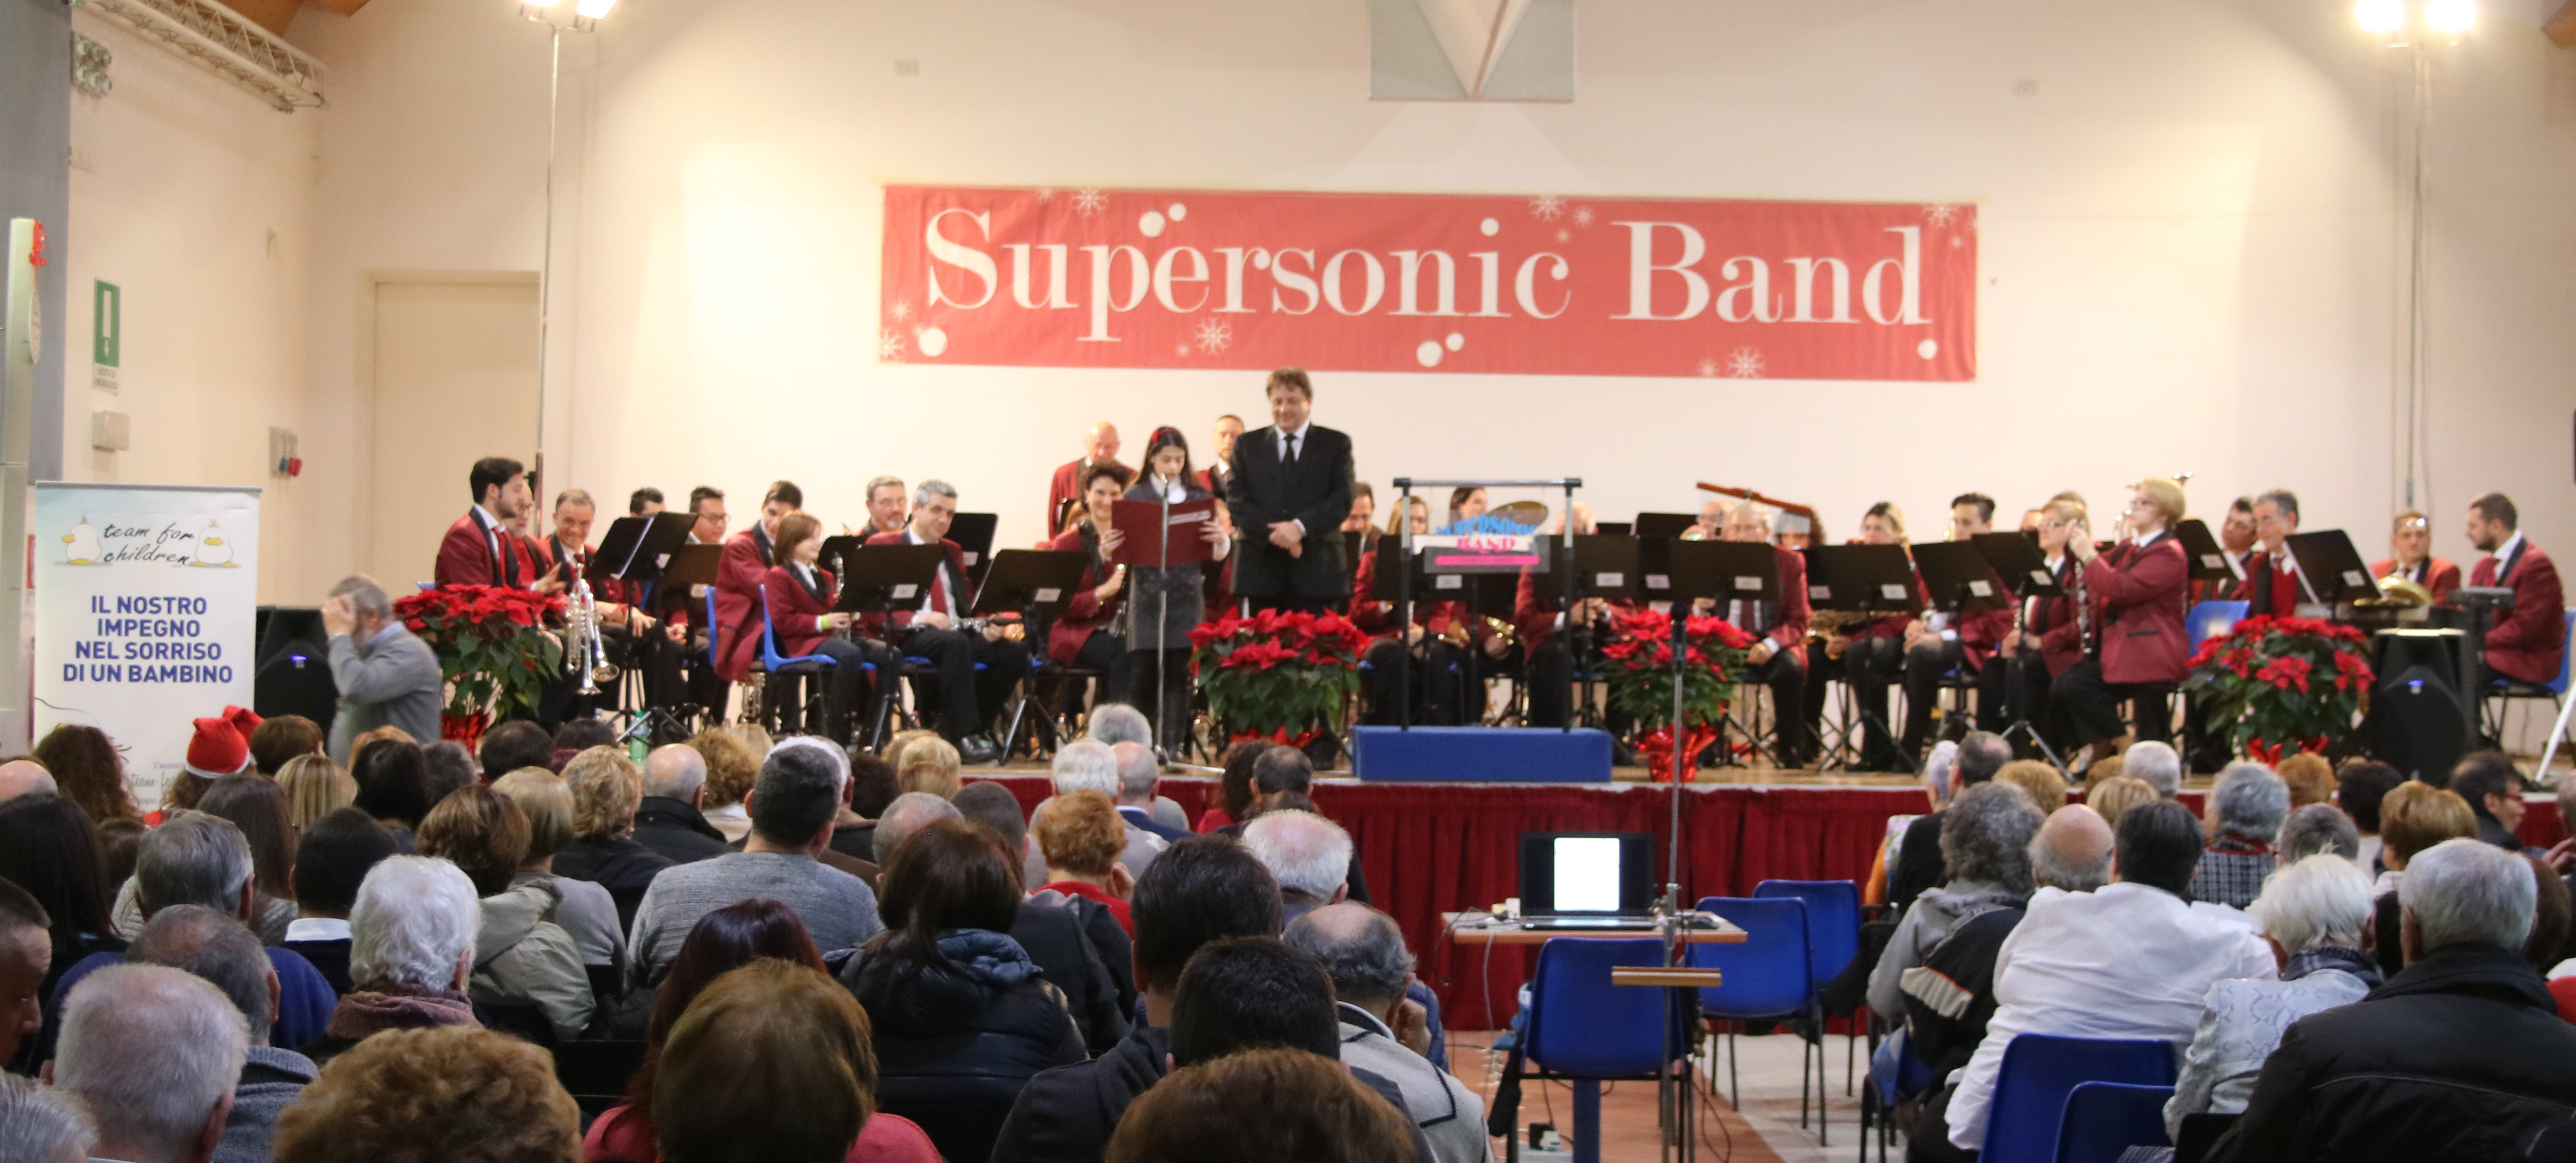 SUPERSONIC BAND 26-12-2017